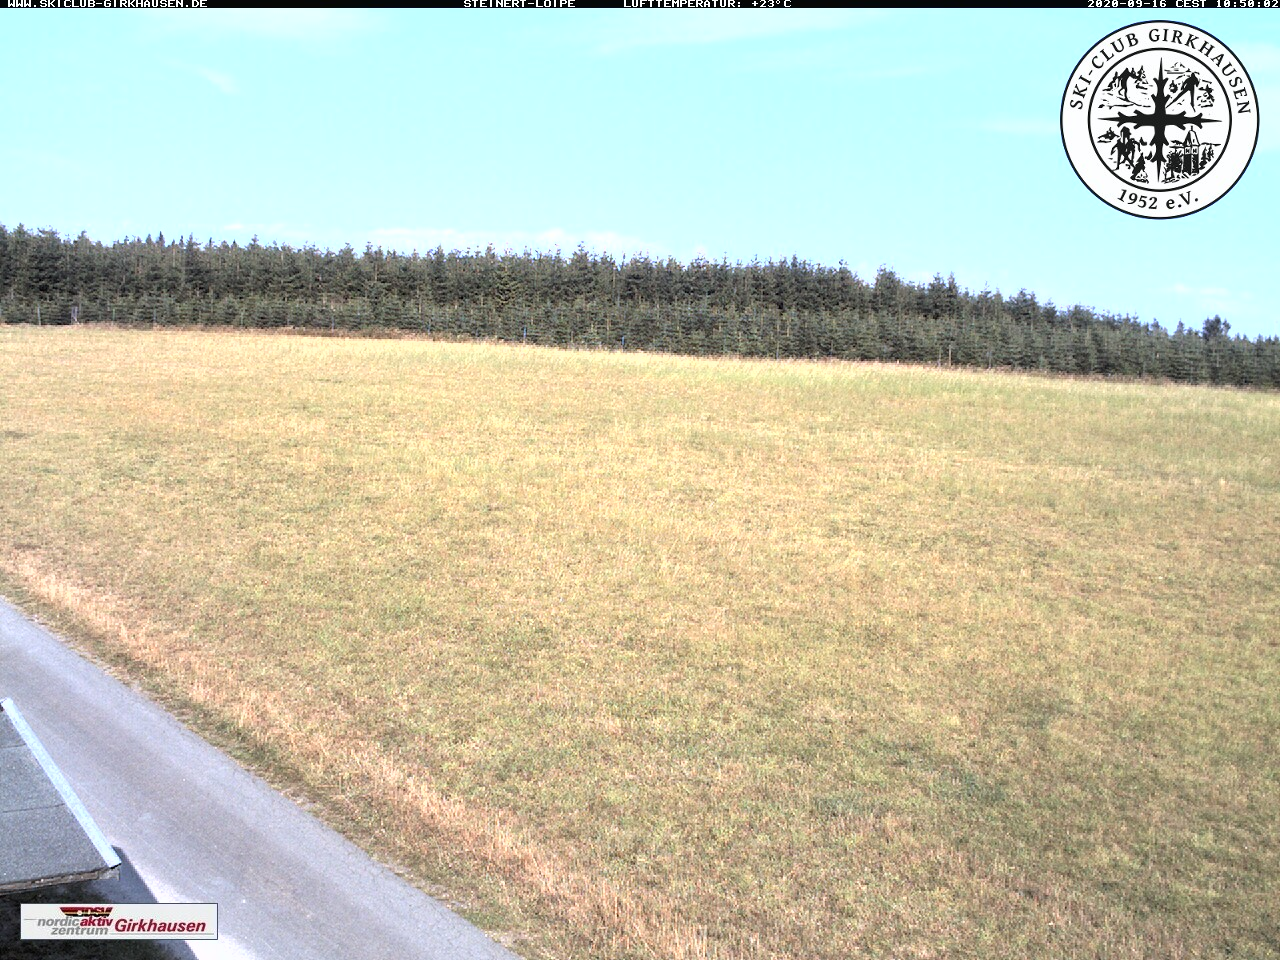 Girkhausen - DSV Nordic-Aktiv-Zentrum - webcam 1